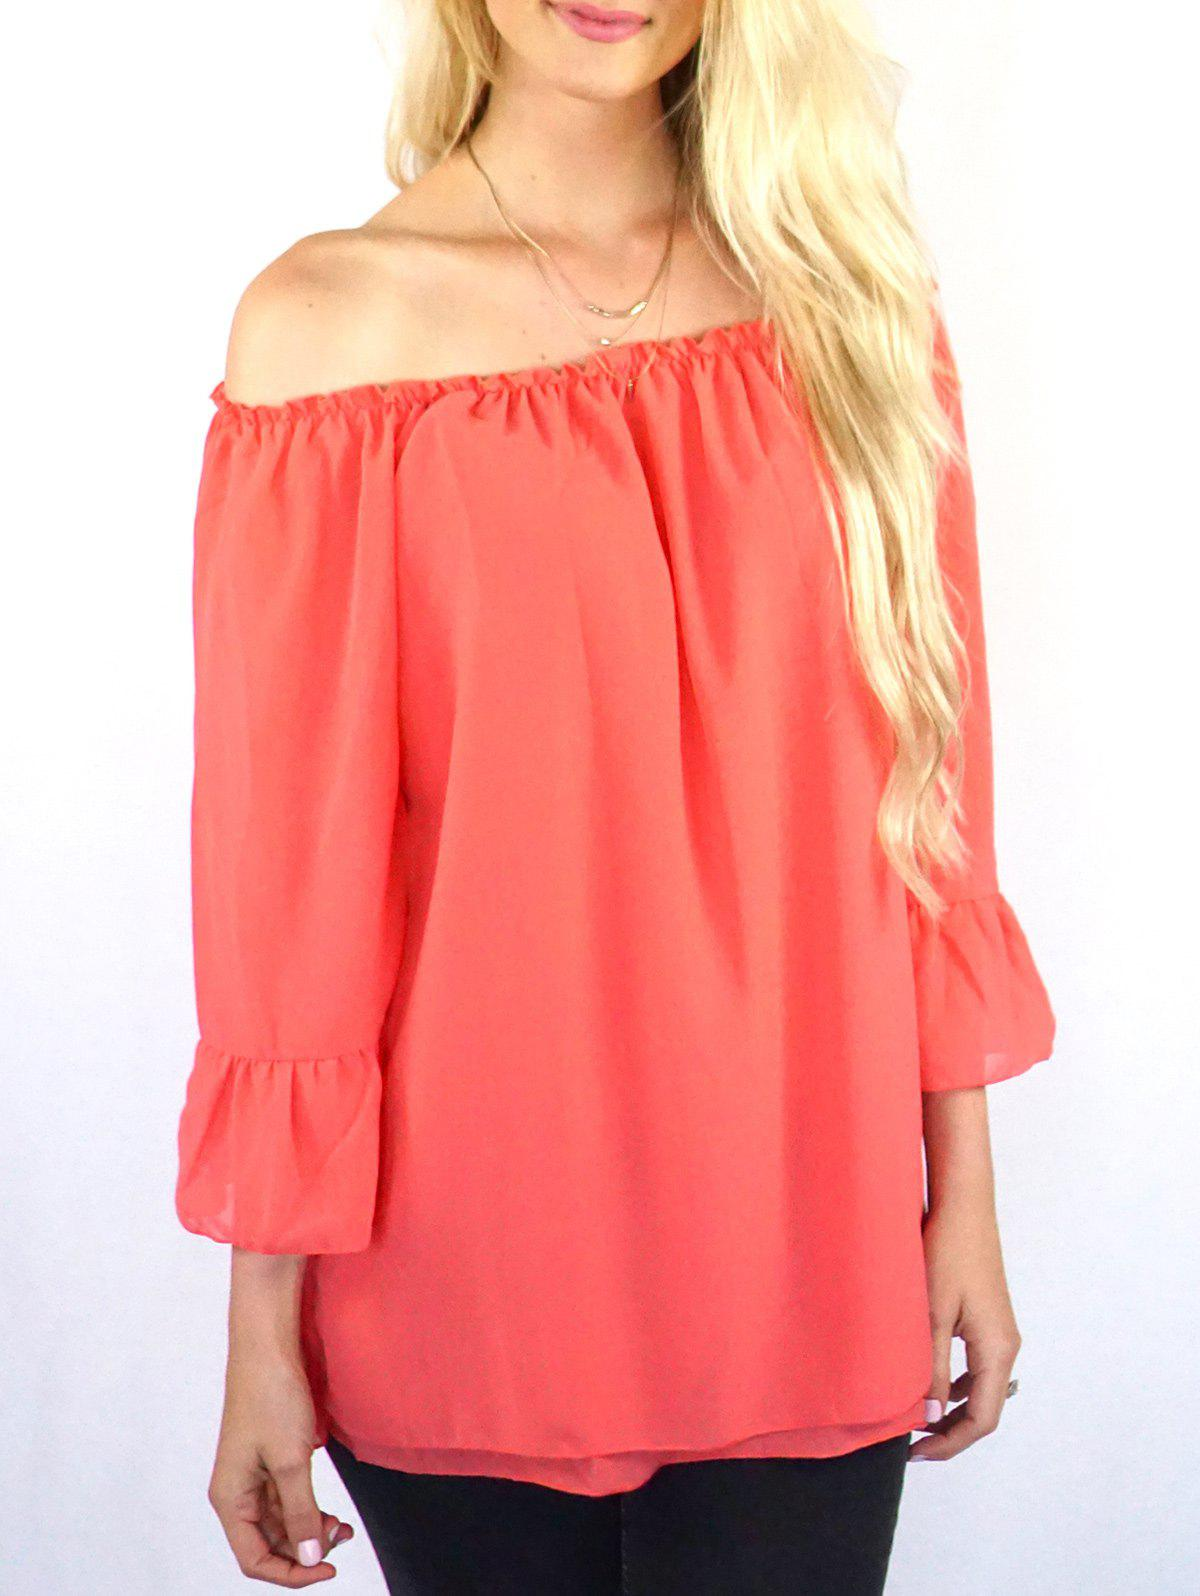 Endearing Off-The-Shoulder Pure Colour Ruffled Blouse For Women - ORANGE RED S